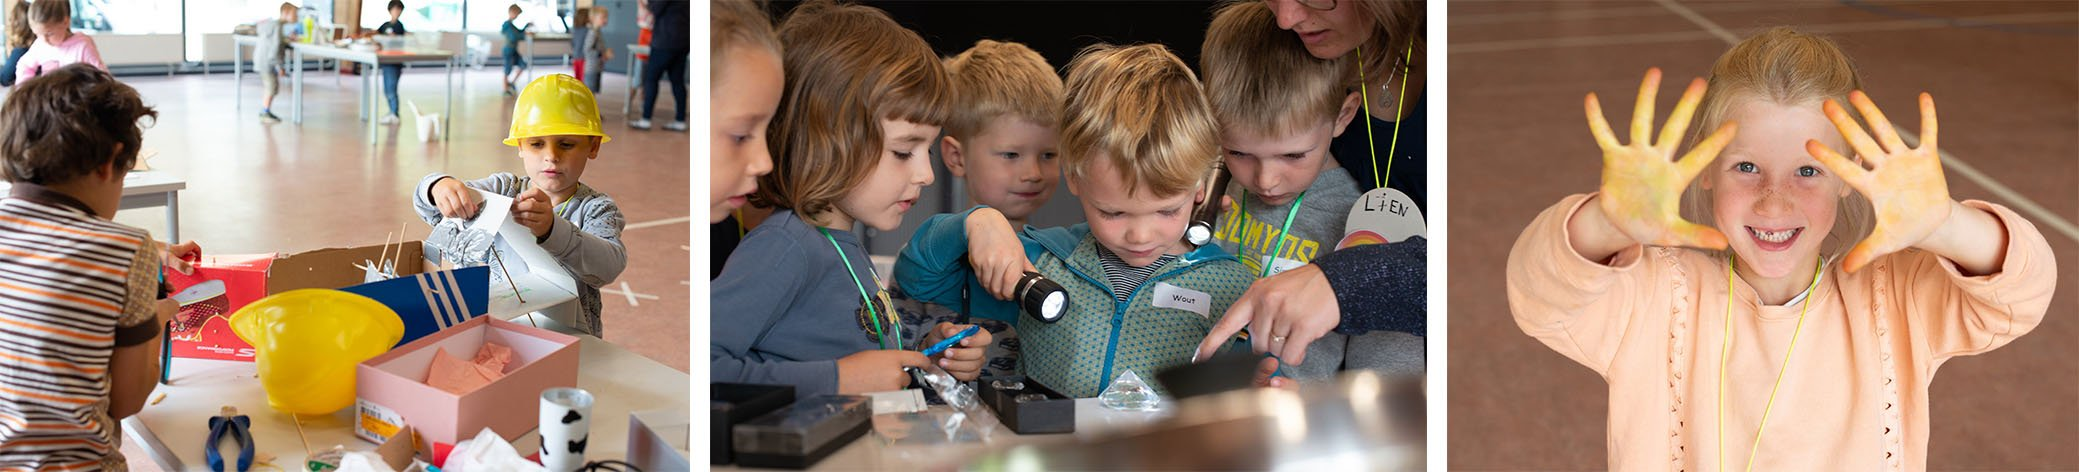 stem kinderlabo arteveldehogeschool